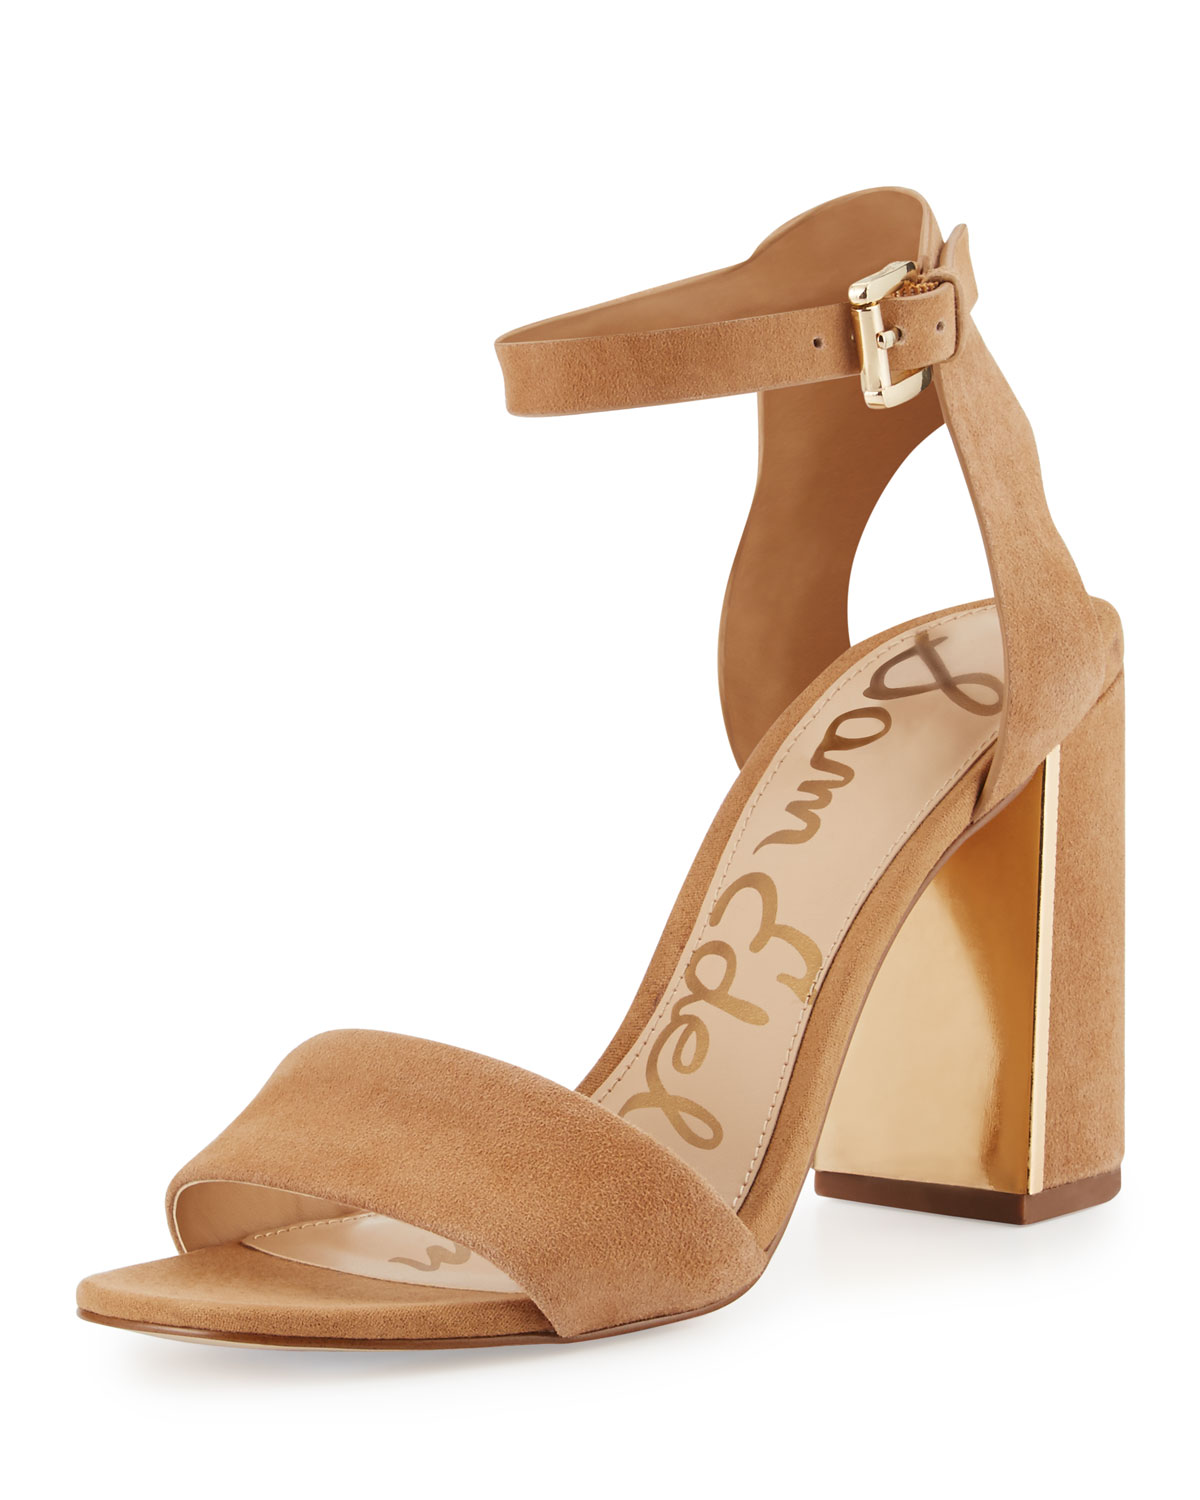 0c05ccd4be08 Sam EdelmanSynthia Suede Chunky-Heel Sandal. Free Shipping ...